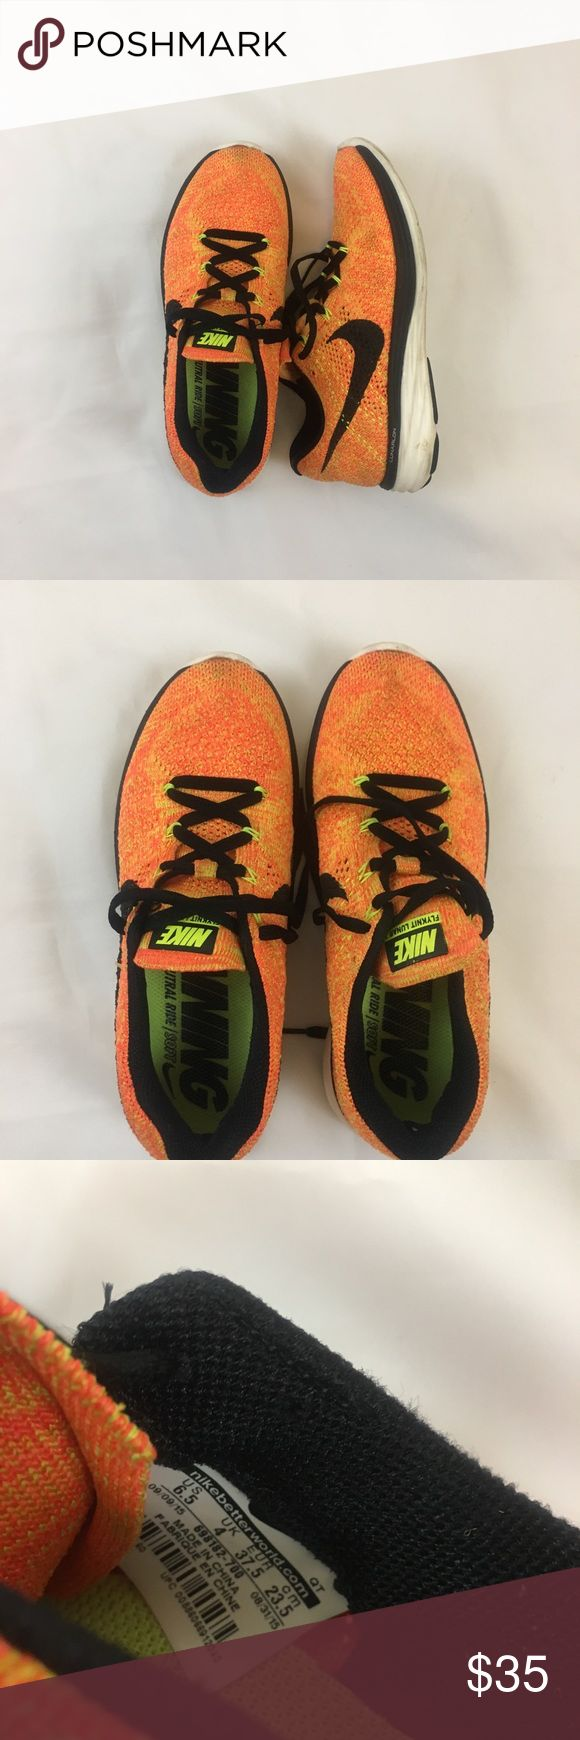 Nike Flyknit Lunar 3 Sz 6.5 🧡 Orange flyknit lunar 3 sneakers by Nike. Comfy flyknit upper with detached (vs fixed/ sewn in) tongue and cushy sole. Light wear to sole and some to upper. Size 6.5; retail $150 Nike Shoes Athletic Shoes